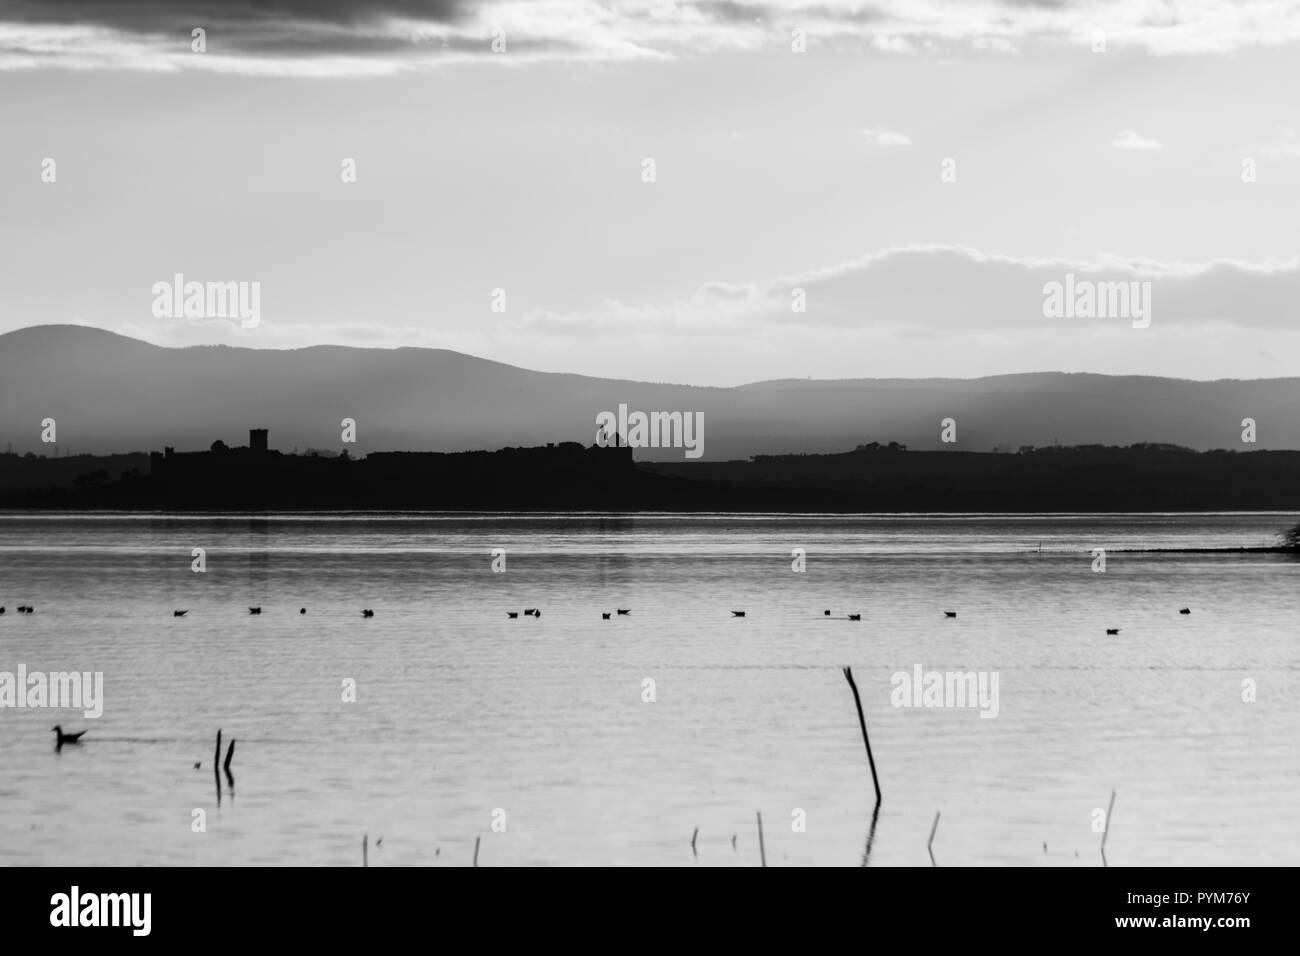 Beautiful view of Trasimeno lake at sunset with birds on water, trees and Castiglione del Lago town in the background Stock Photo